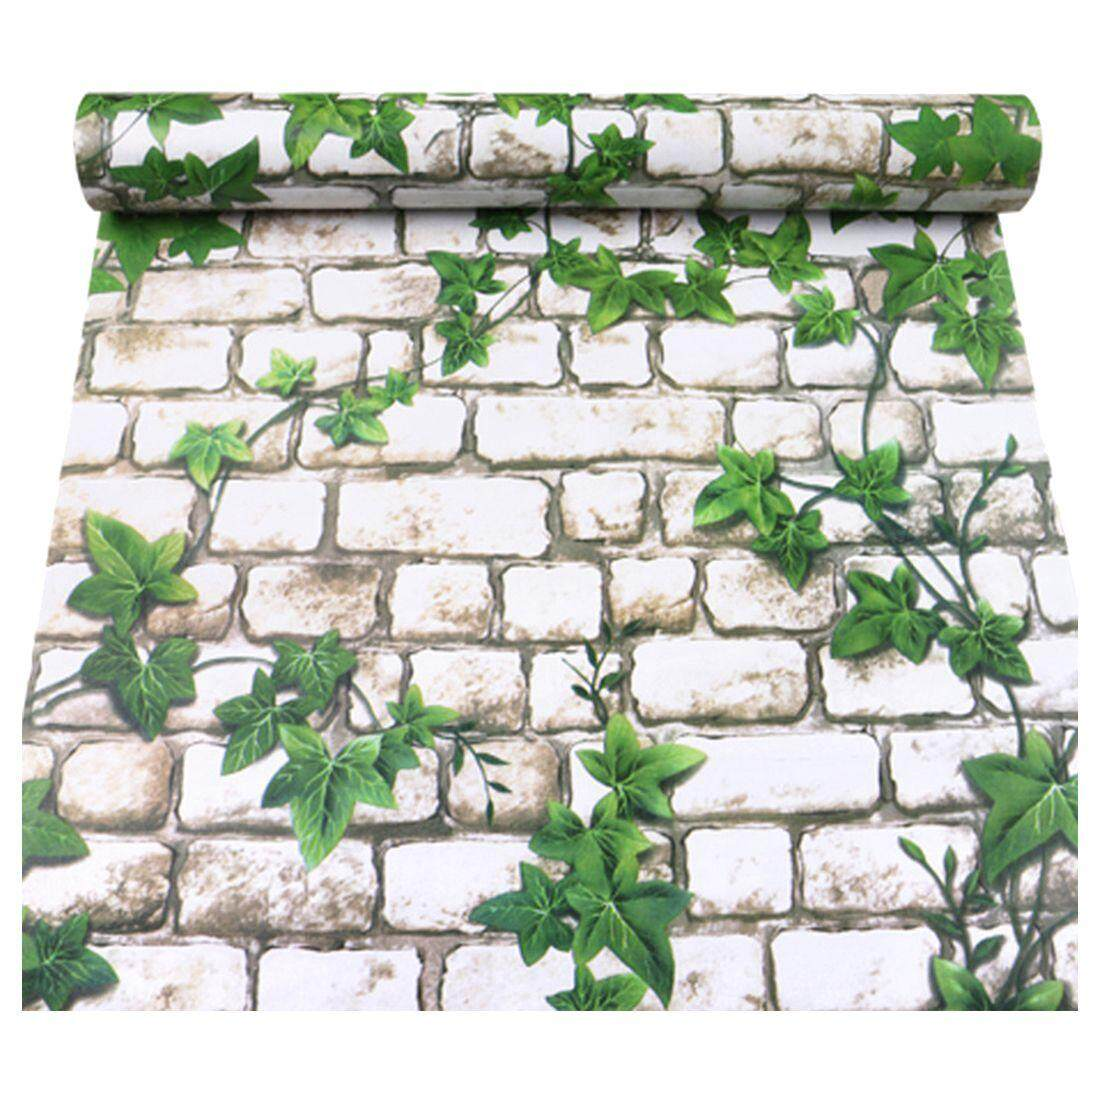 3D three-dimensional imitation brick waterproof wall stickers self-adhesive stickers wallpaper 45 * 100cm: White + green